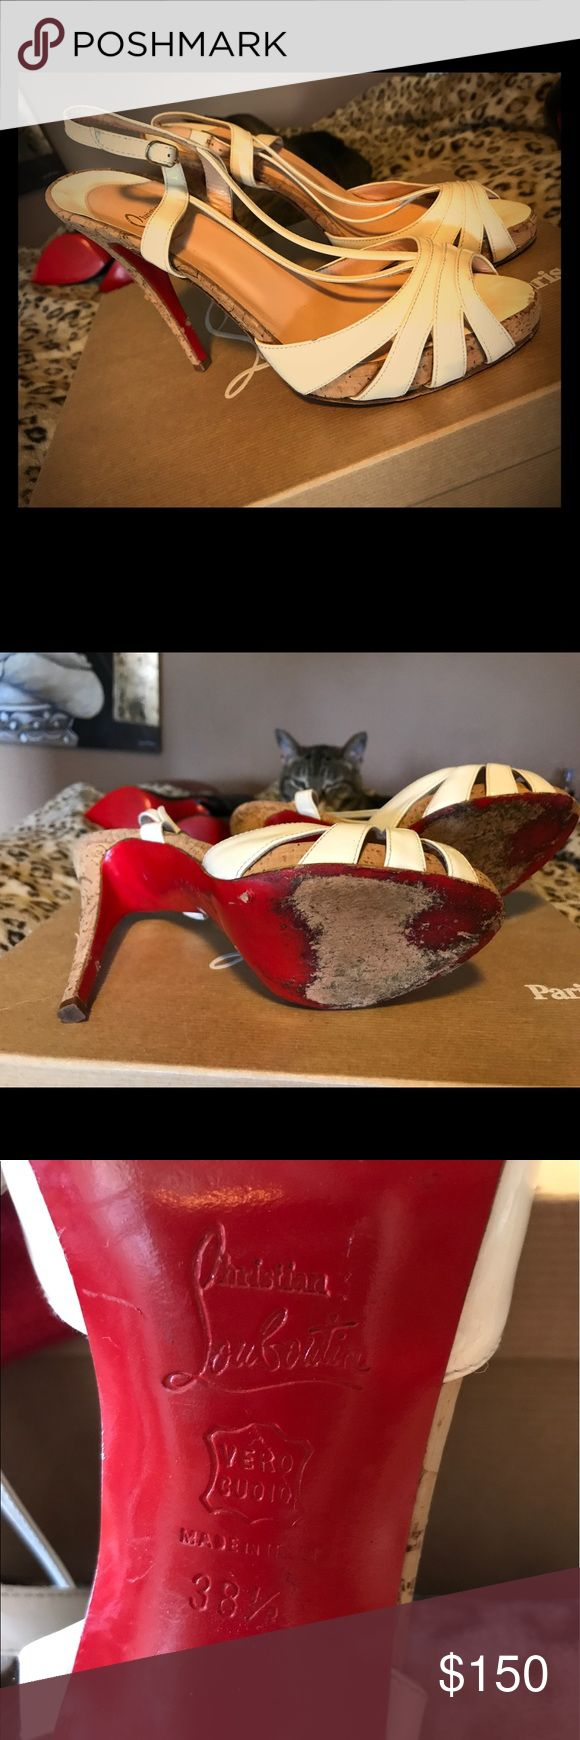 CHRISTIN LOUBOUTIN CHRISTIN LOUBOUTIN STRAPPY HEELS SZ. 38.5 Used for many years but still in great shape & has lots of life left! No box or dust bag A/X Armani Exchange Shoes Sandals